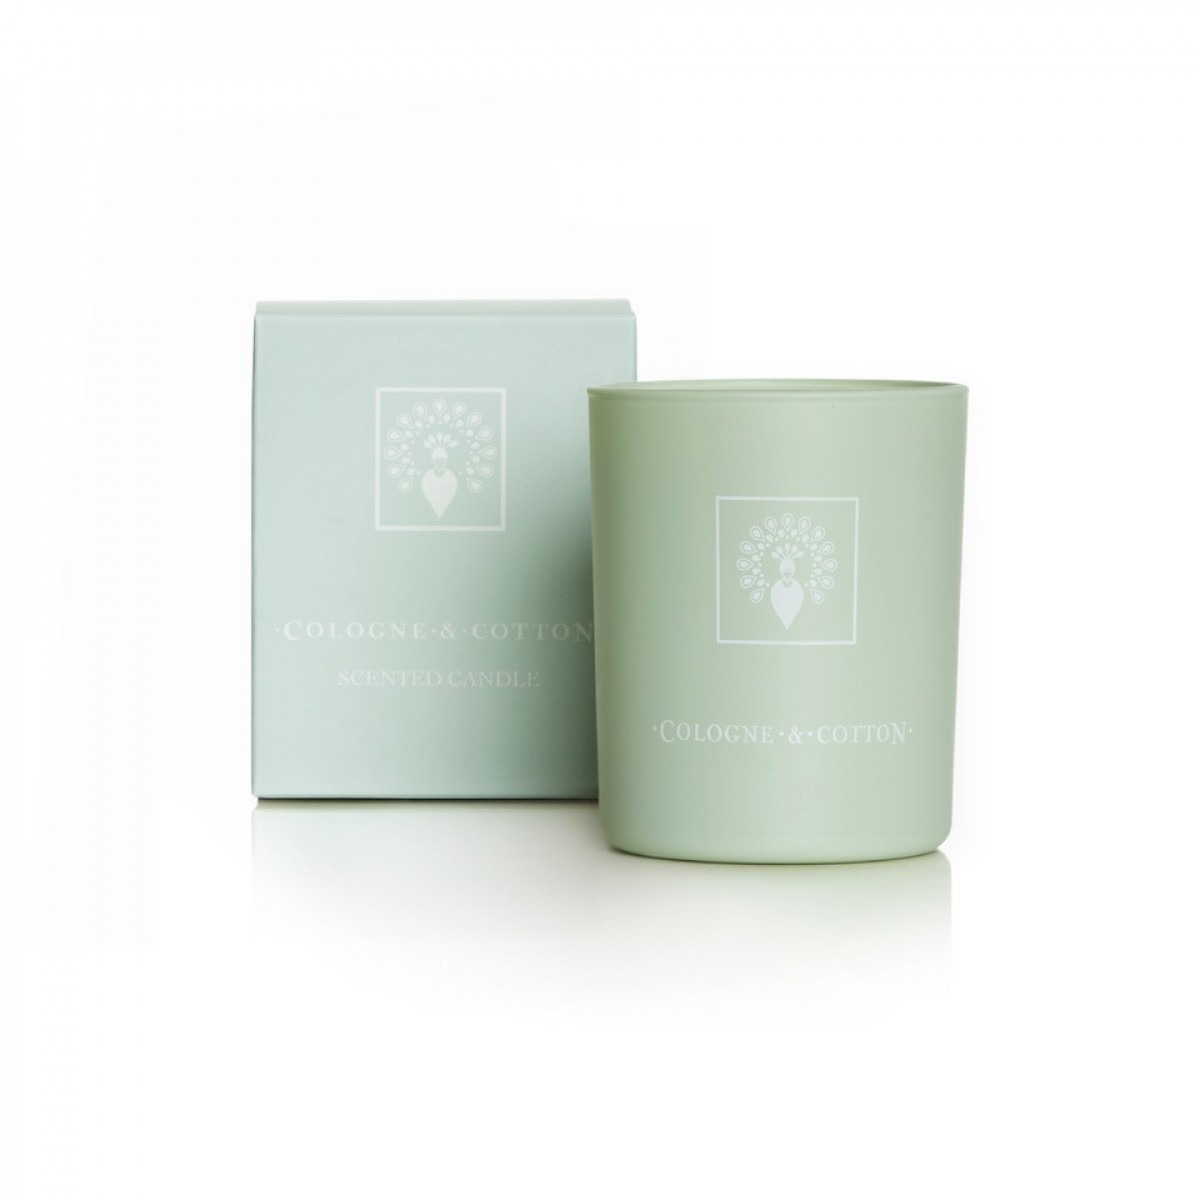 Cologne & Cotton Candle Grapefruit And Mimosa 180g